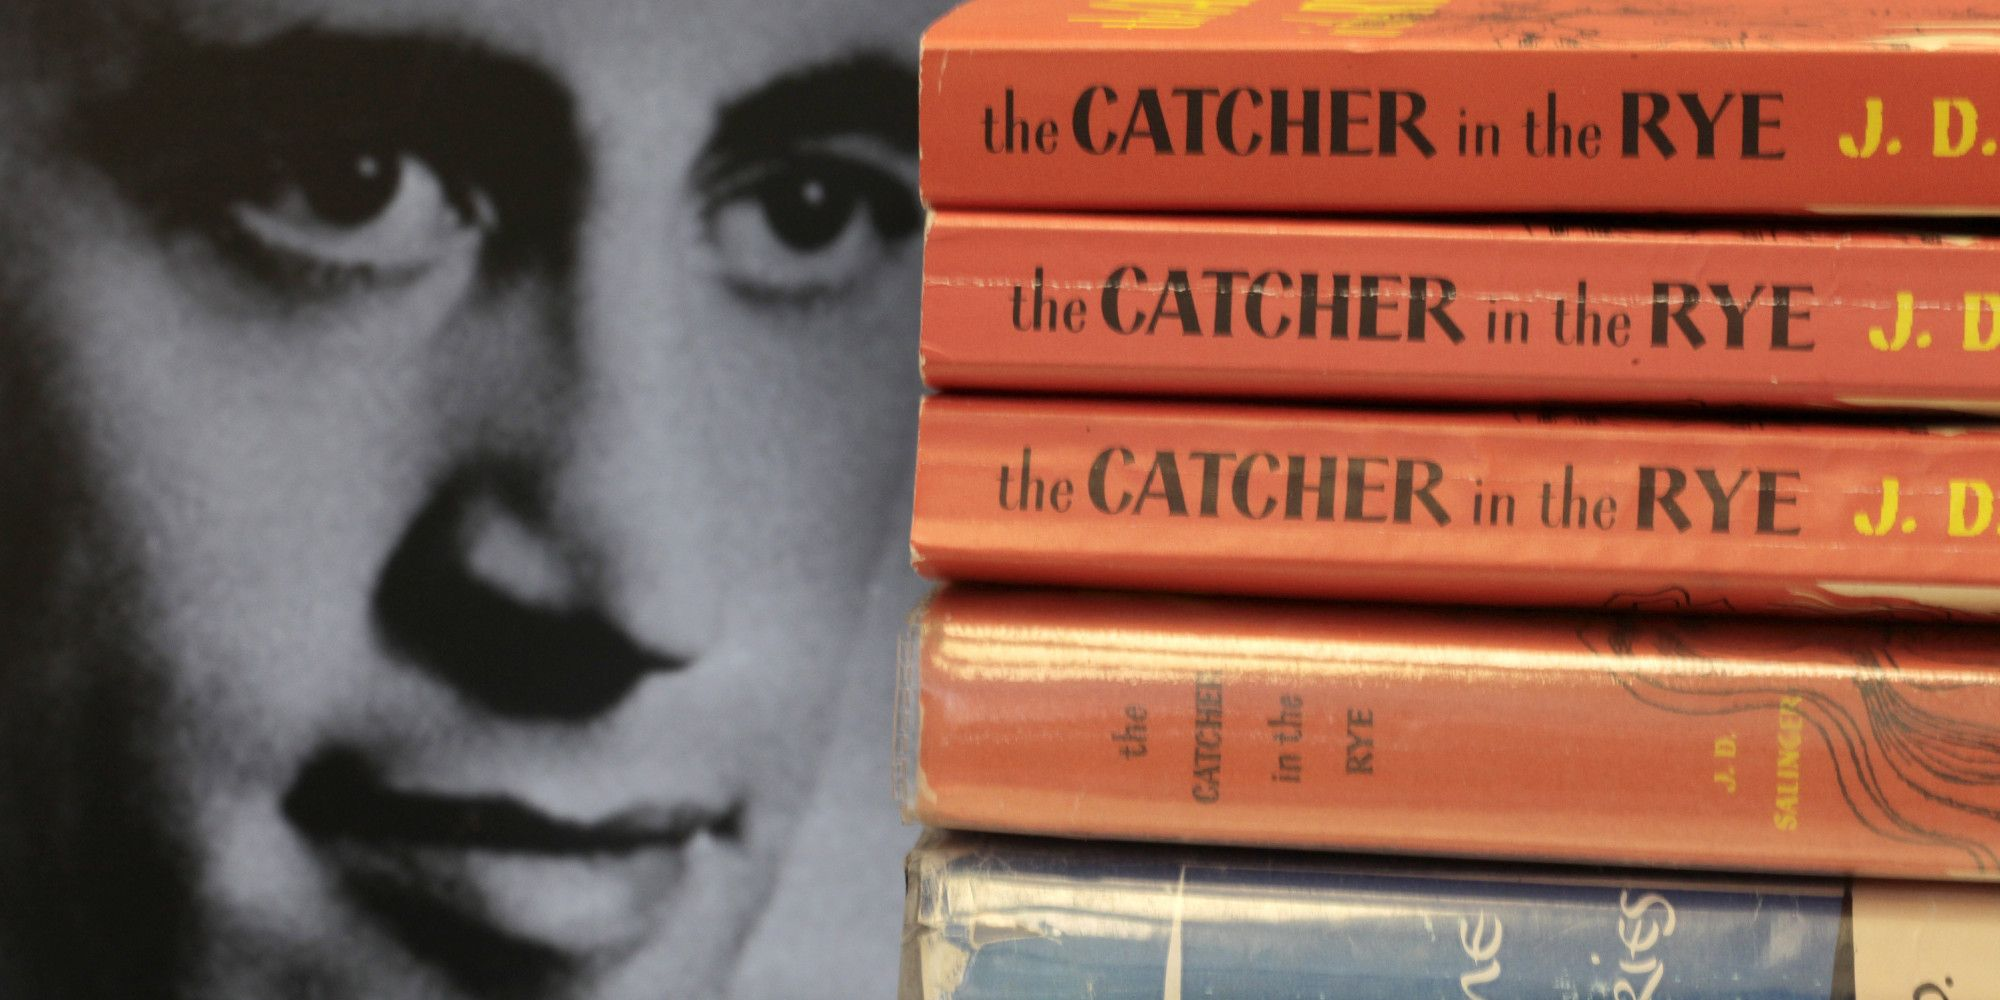 best images about catcher in the rye editor 17 best images about catcher in the rye editor holden caulfield and hunting hat